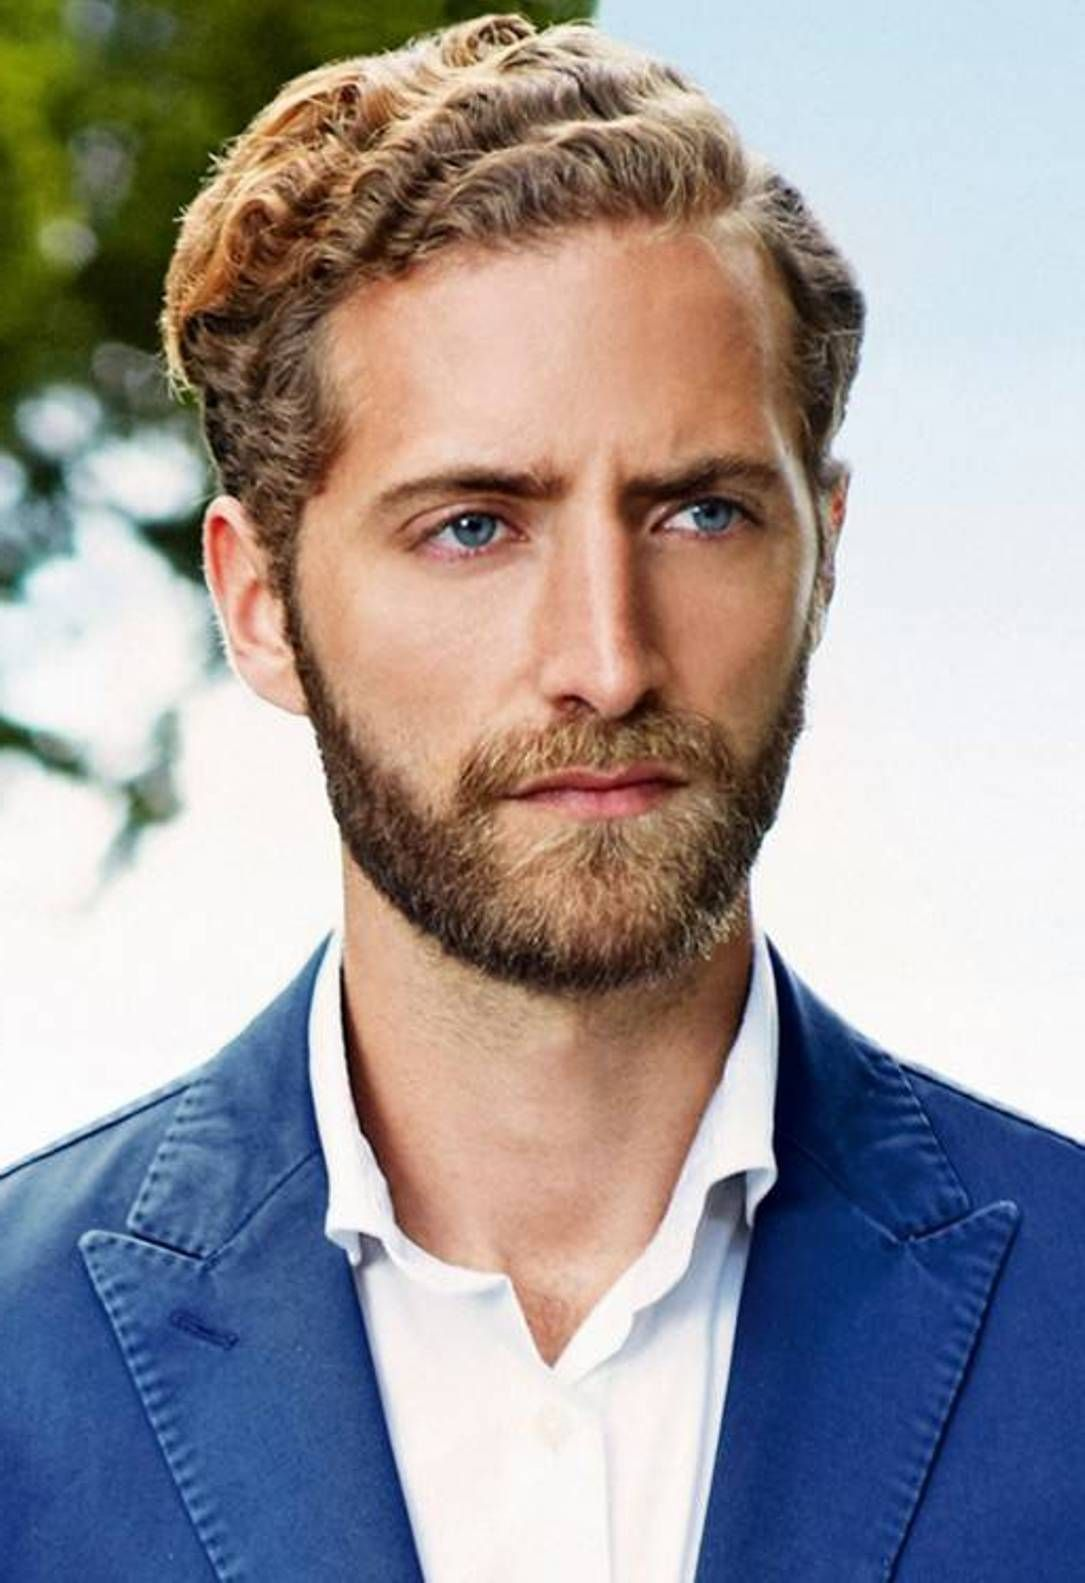 Sensational Hair Style For Men Curly Hair Styles And Style For Men On Pinterest Hairstyles For Women Draintrainus